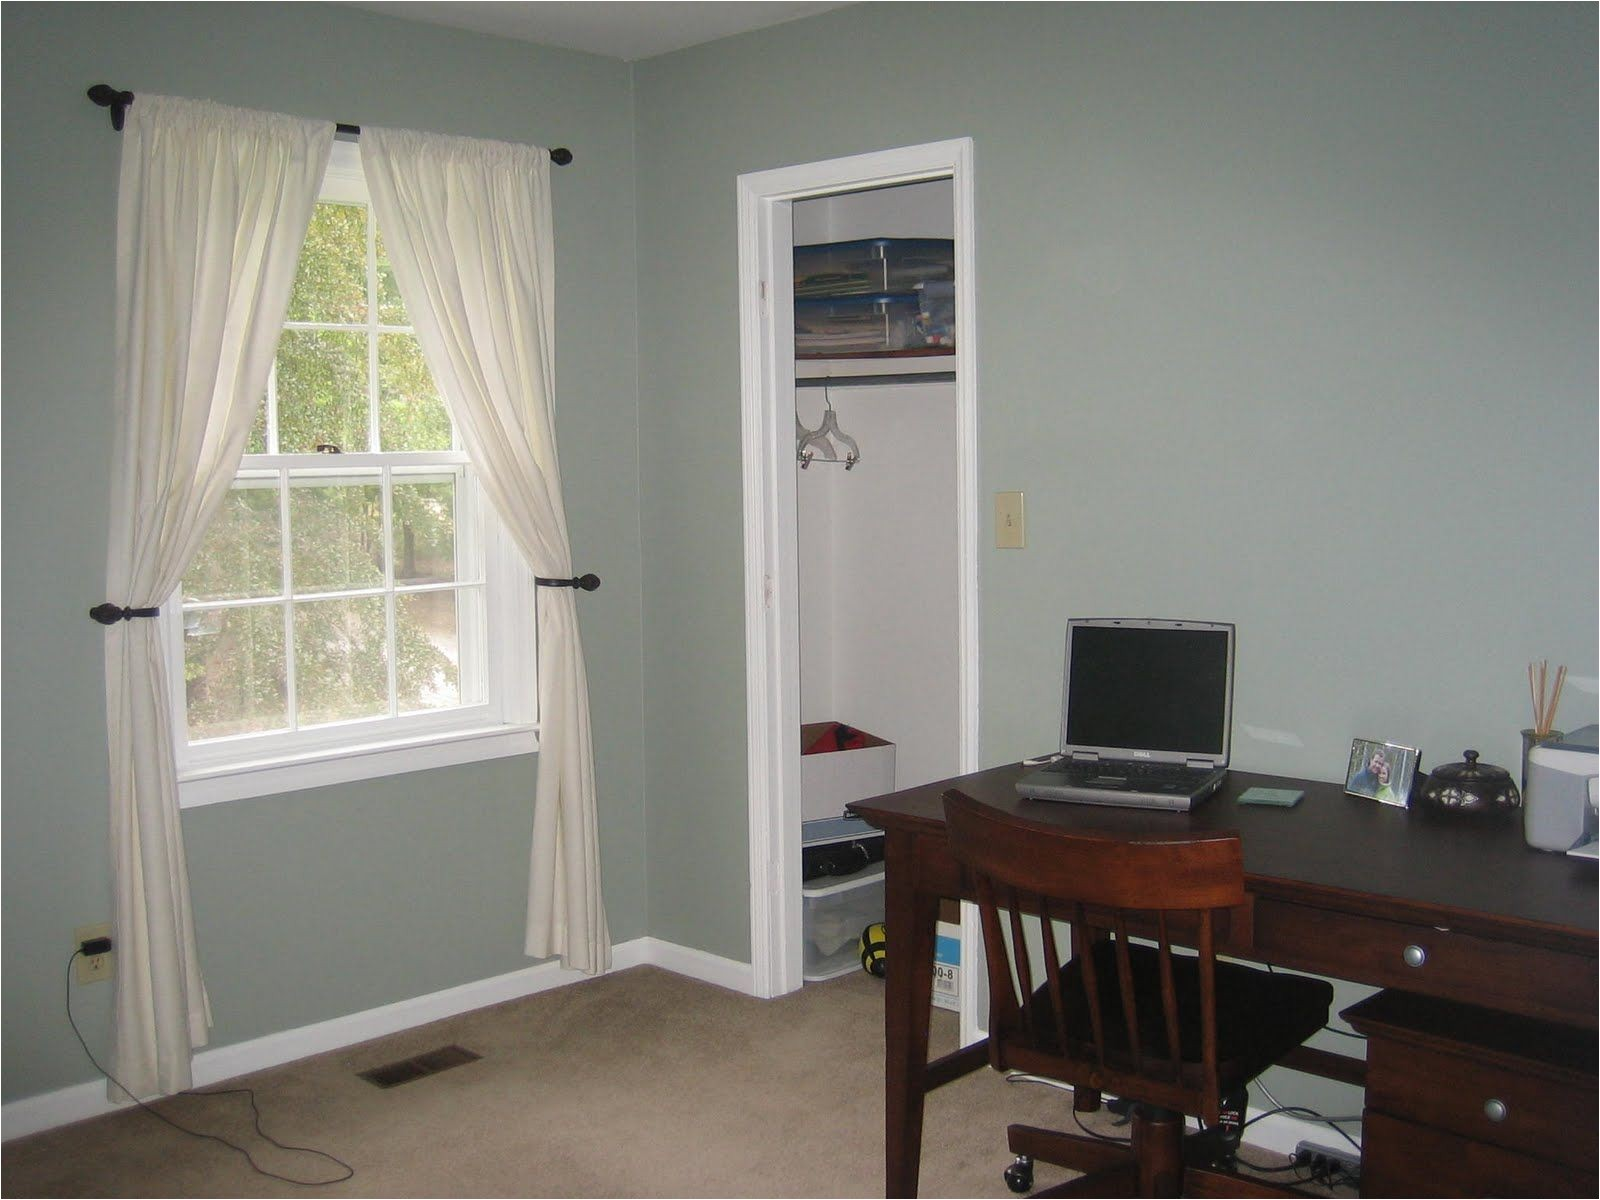 sherwin williams oyster bay changes from green to blue to grey depending on the light love it